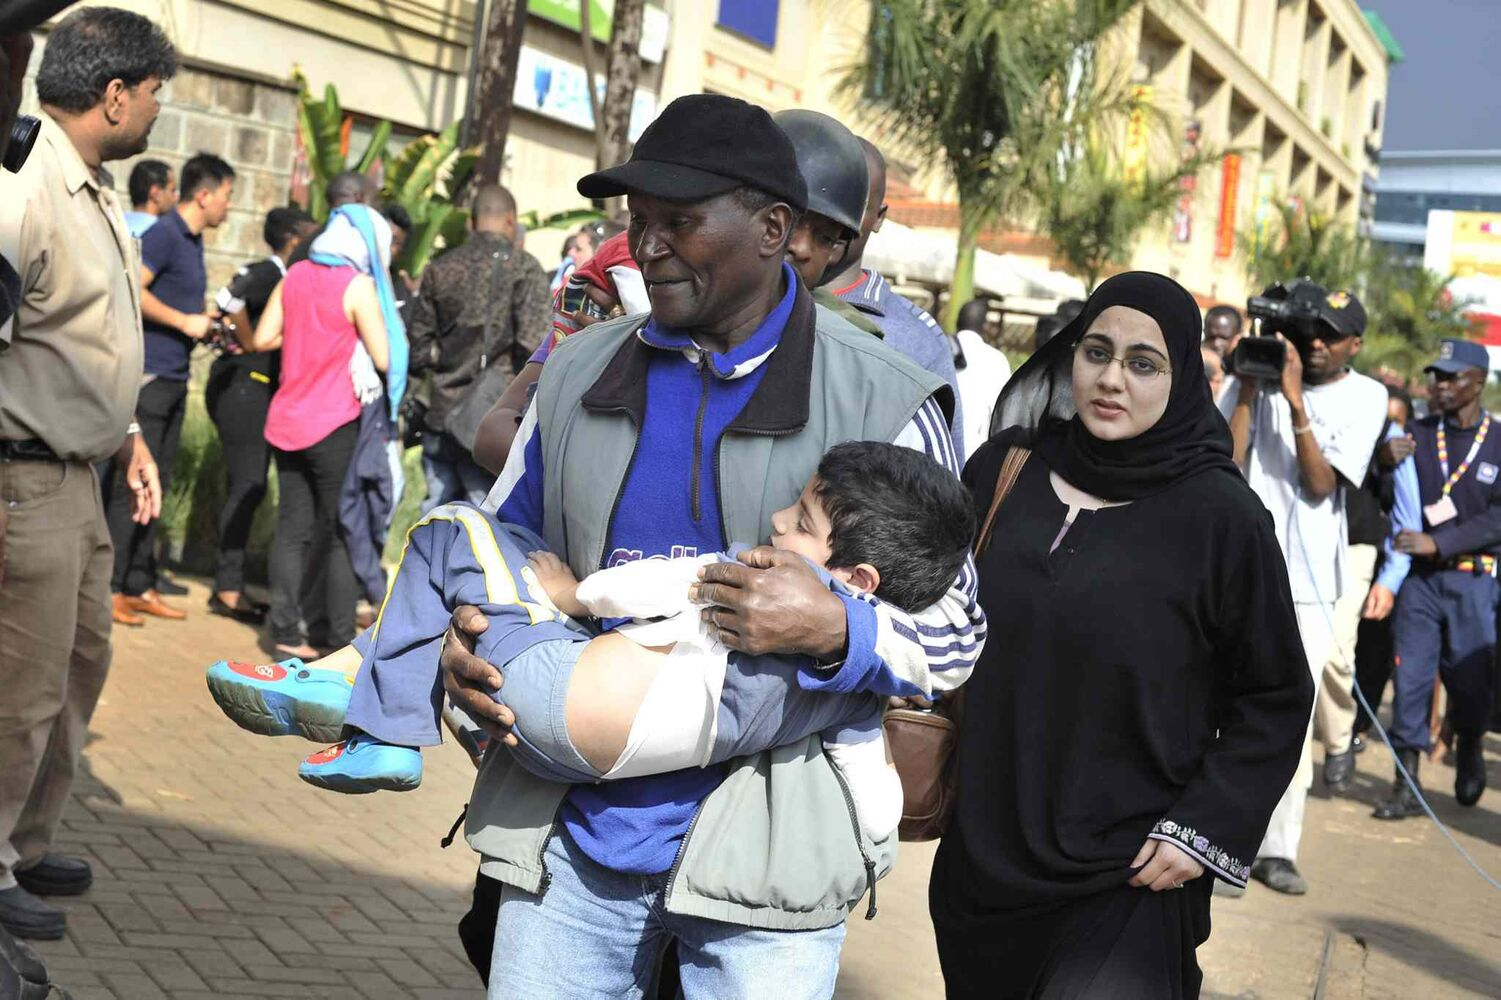 A rescue worker helps a child outside the Westgate Mall in Nairobi, Kenya, Saturday, after gunmen threw grenades and opened fire during an attack that left multiple dead and dozens wounded. A witness to the attacks on the upscale shopping mall says that gunmen told Muslims to stand up and leave and that non-Muslims would be targeted.  (Riccardo Gangale / The Associated Press)